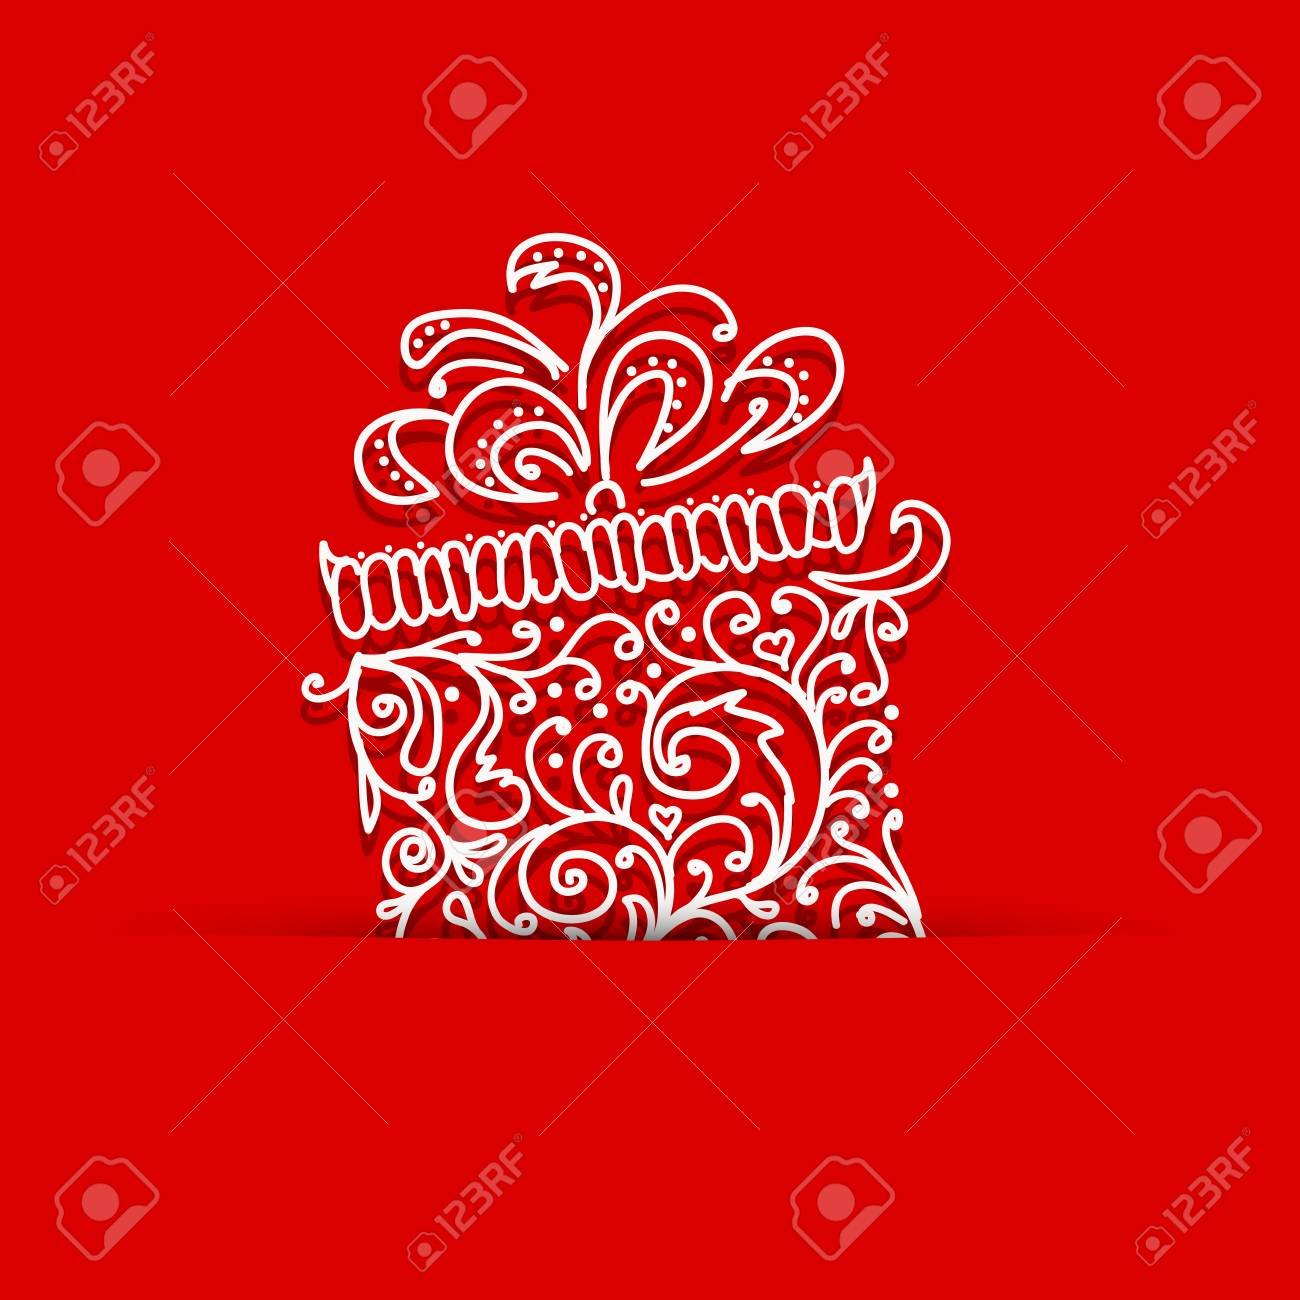 Postcard with gift box stylized for your design Stock Vector - 16683315